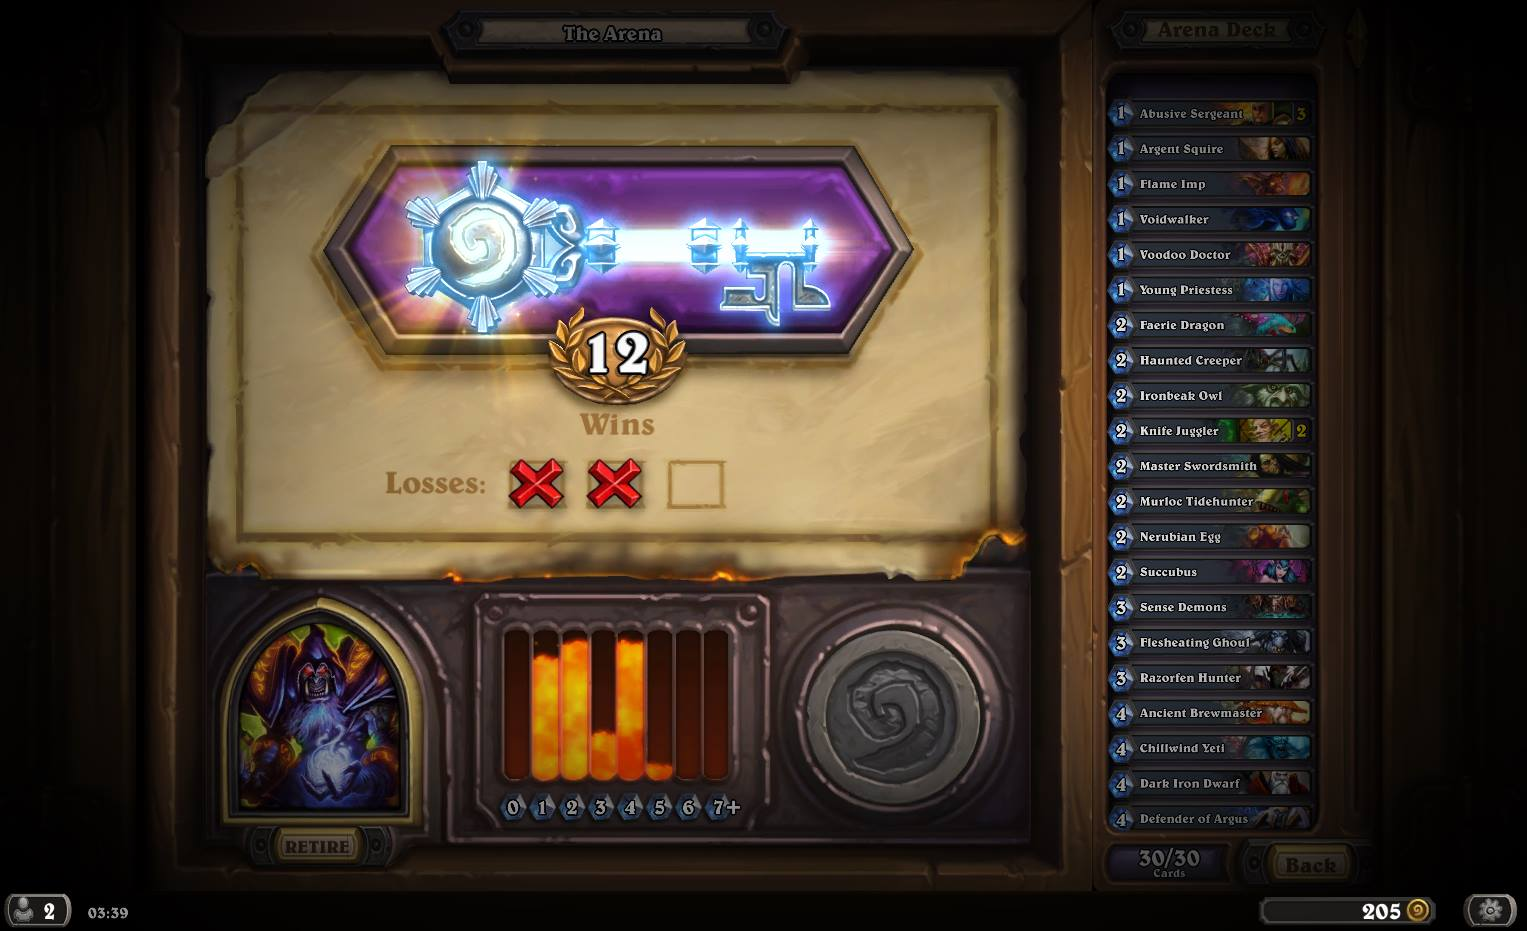 I focused mainly on Arena after getting to rank 5 with Rogue